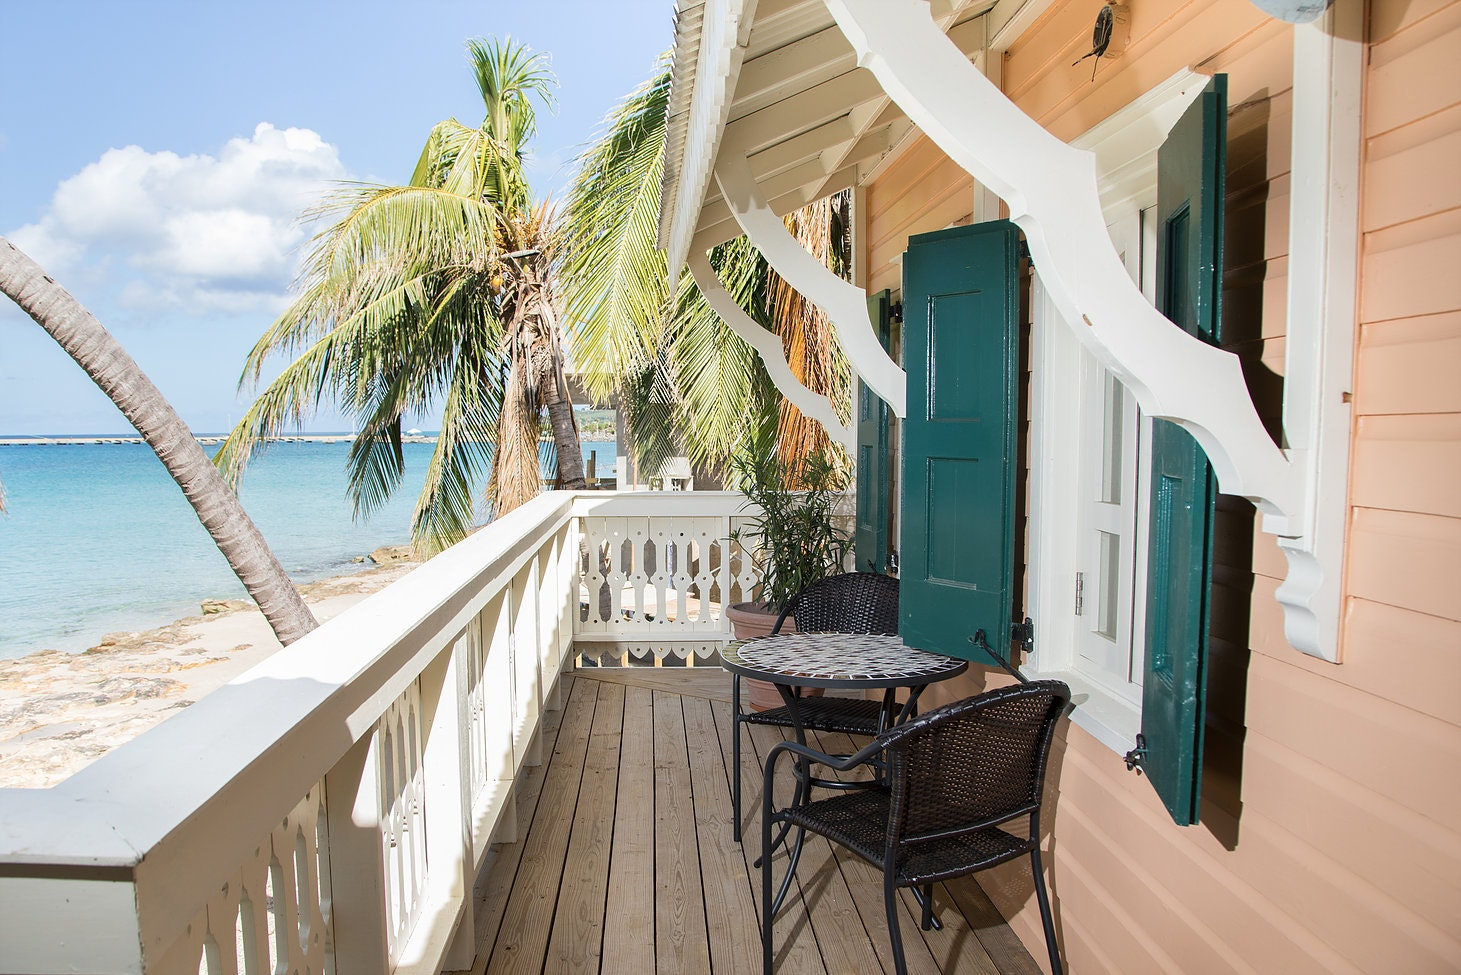 The Fred may be the hippest hotel in the USVI's most underrated town, Frederiksted, on St. Croix.